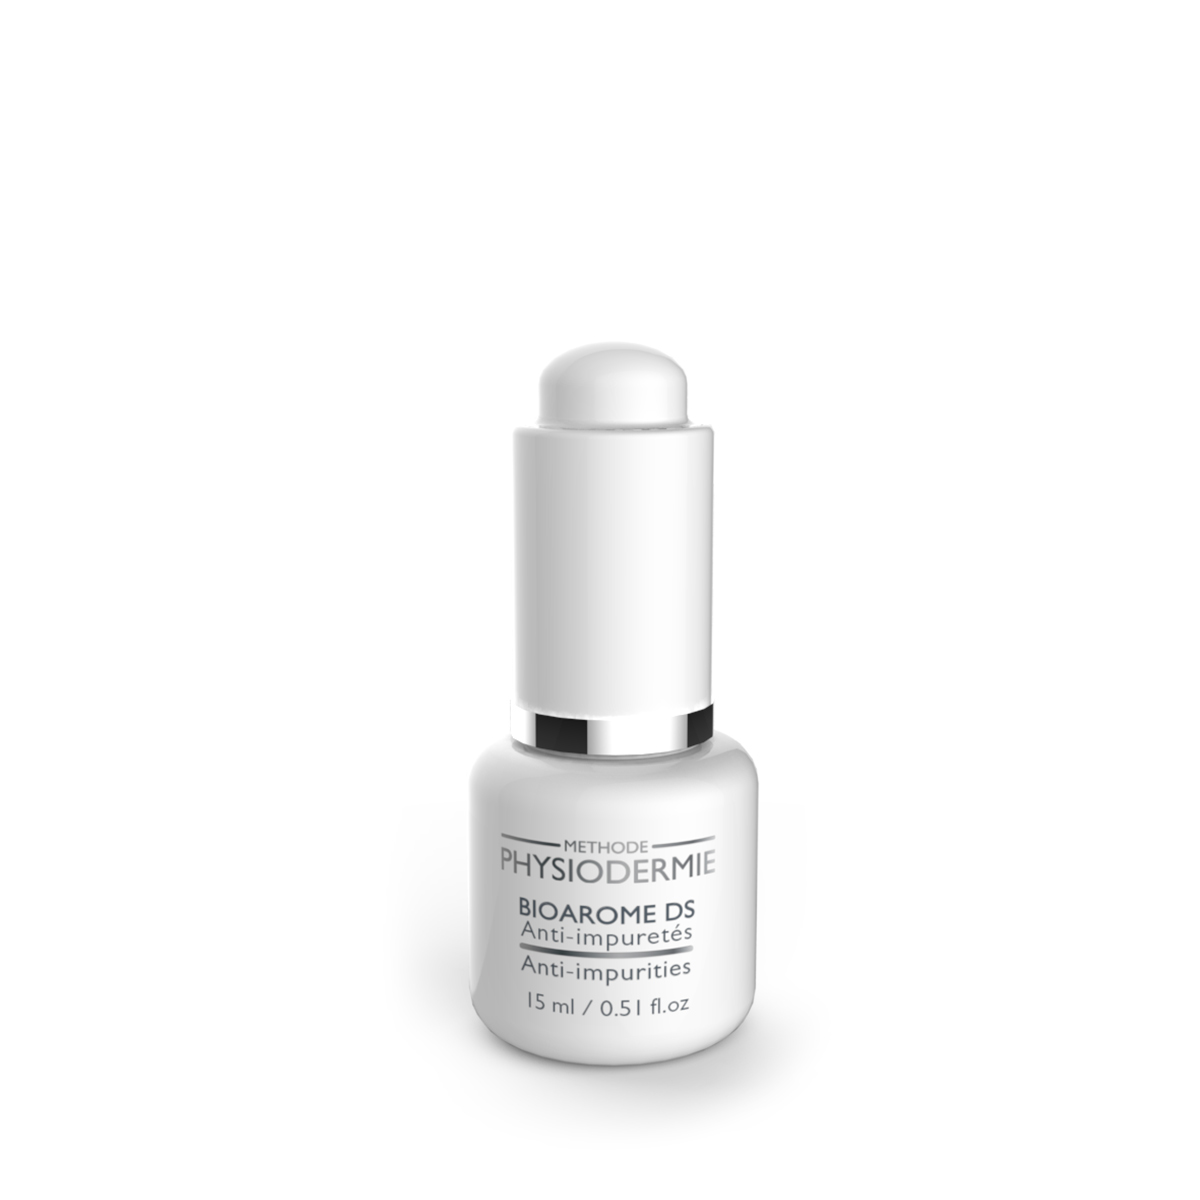 Bioarome DS Anti-Impurities